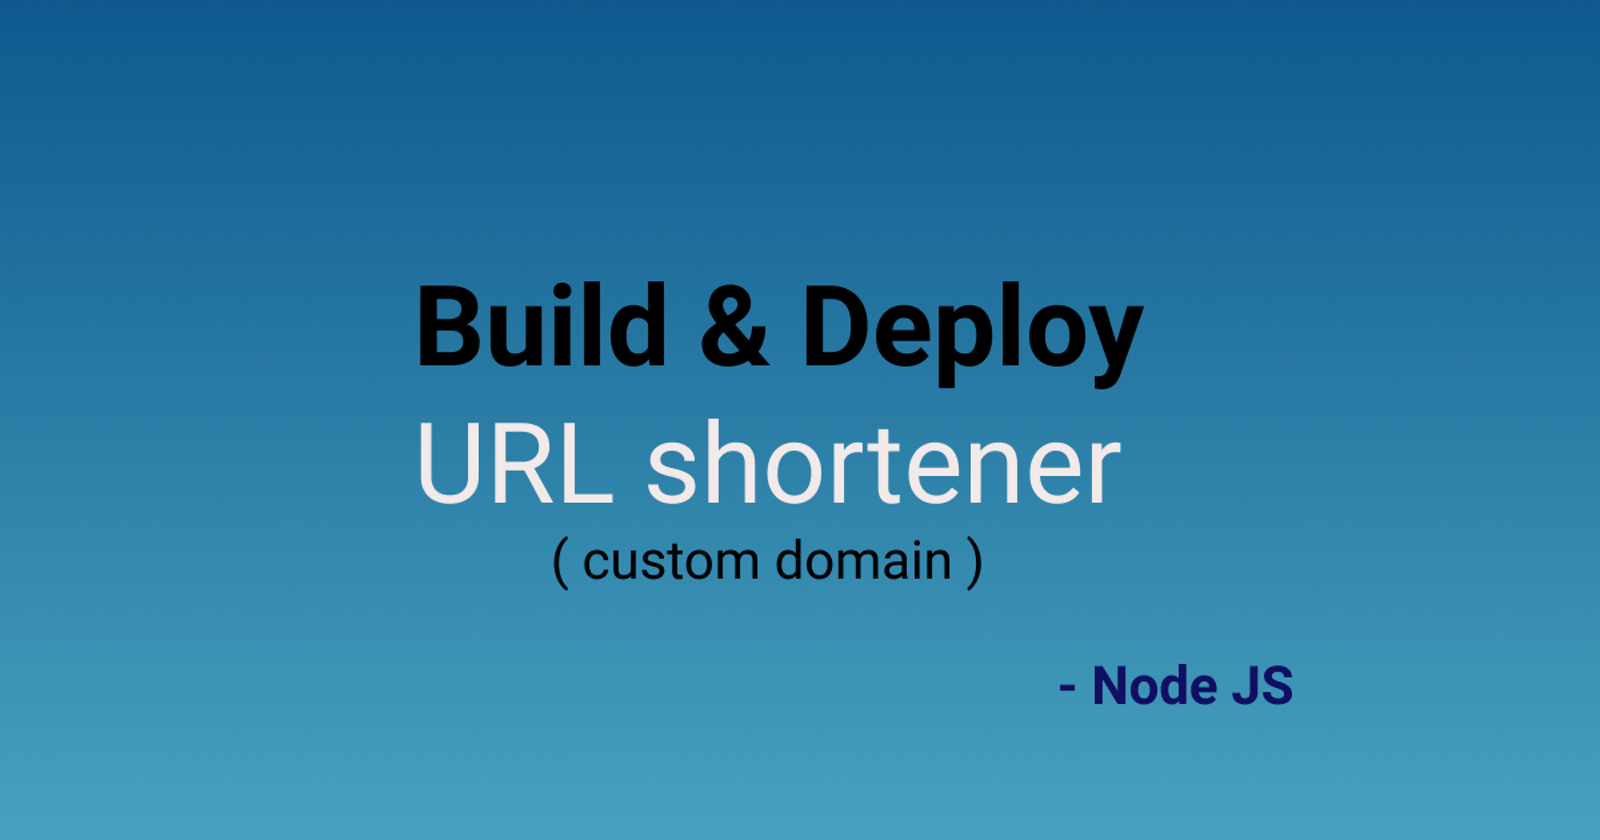 Build and Deploy URL Shortener to custom domain from scratch -  Node JS